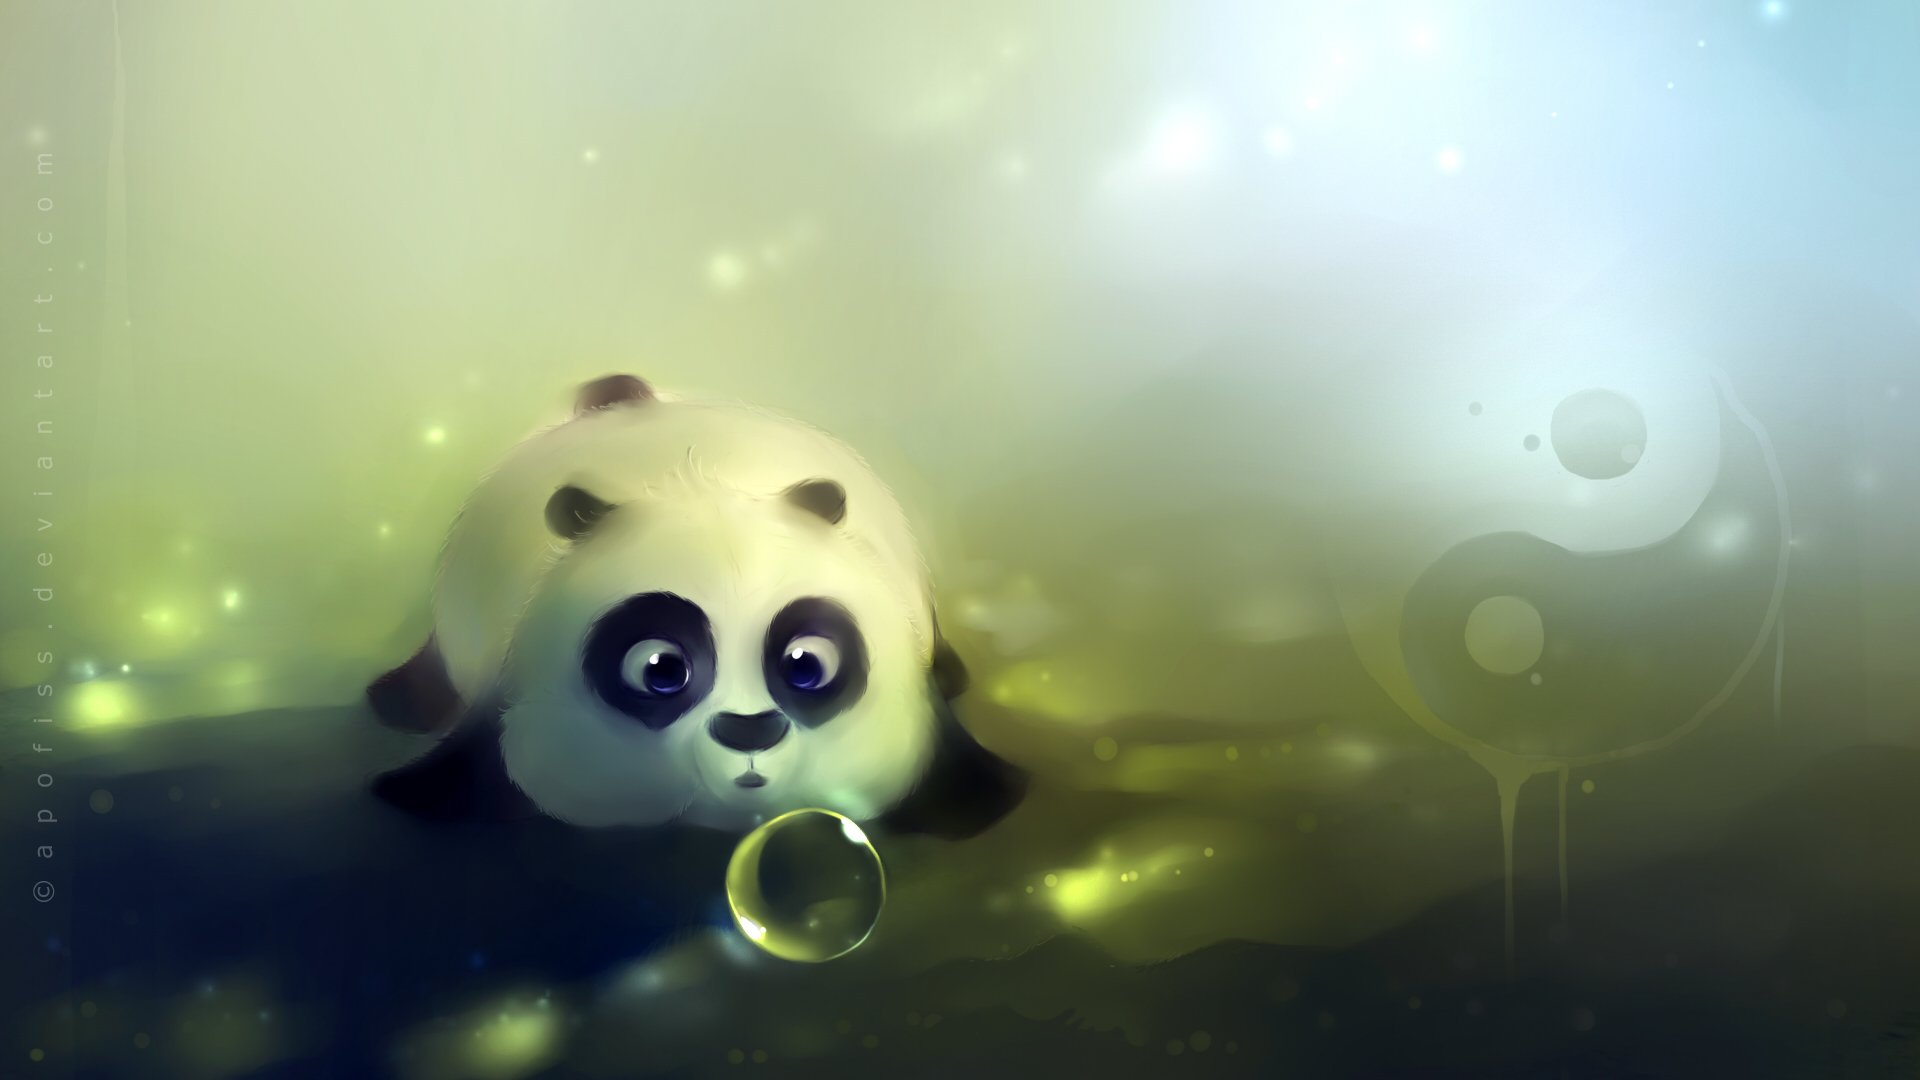 203 Panda HD Wallpapers   Background Images   Wallpaper Abyss HD Wallpaper   Background Image ID 145977